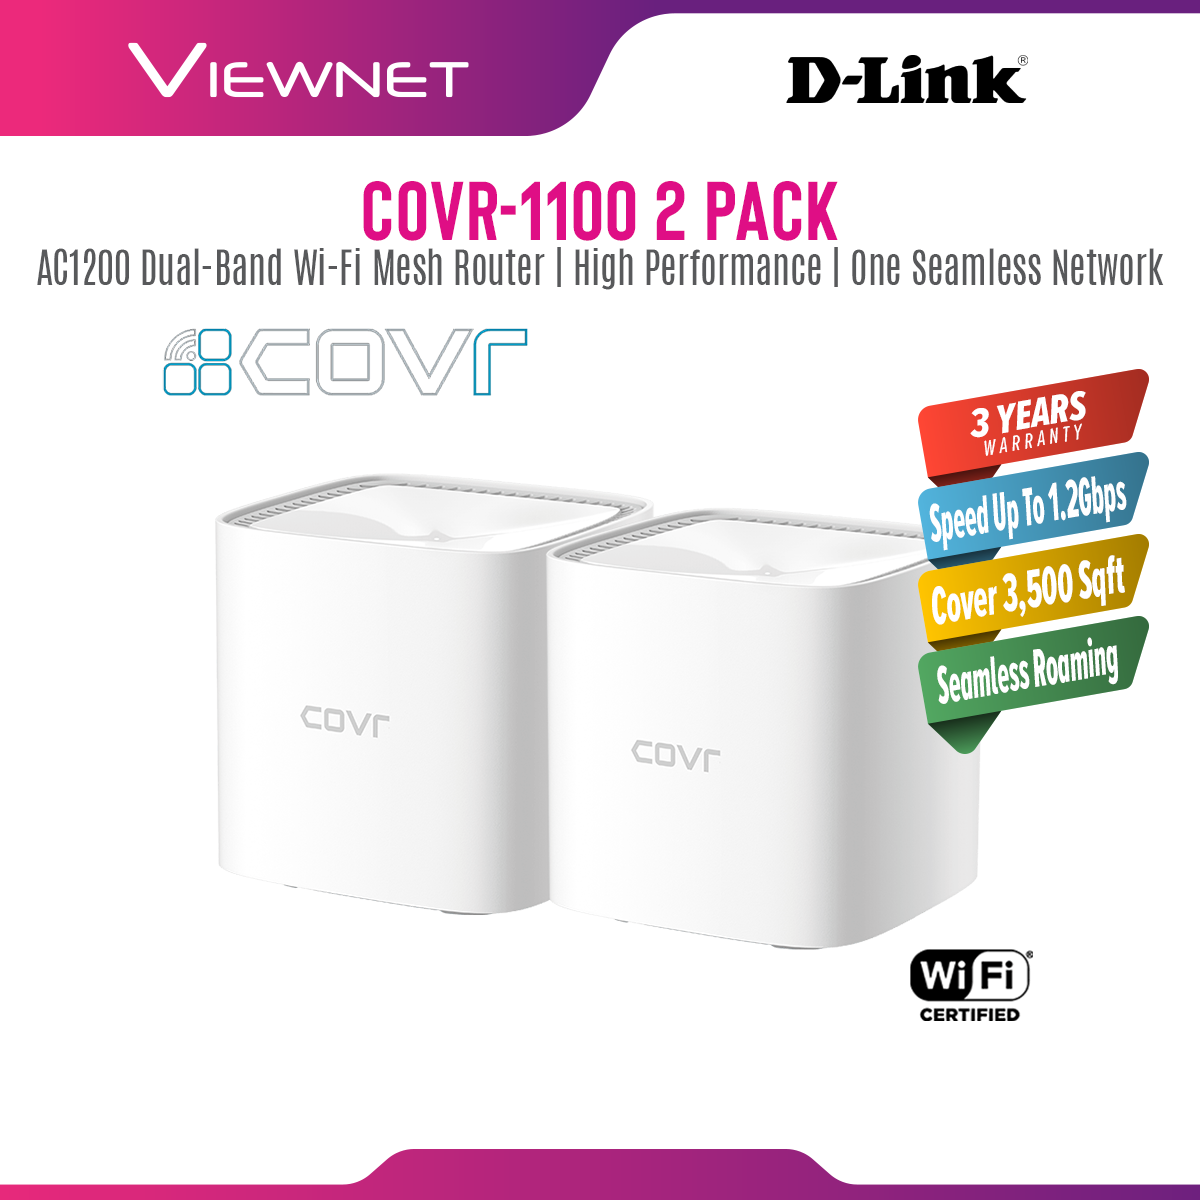 D-Link COVR-C1100 Mesh WiFi Network System Gigabit Dual Band Wave 2 Whole Home Wireless Wi-Fi Router COVR C1100 COVR-1100 2 PACK COVR 1100